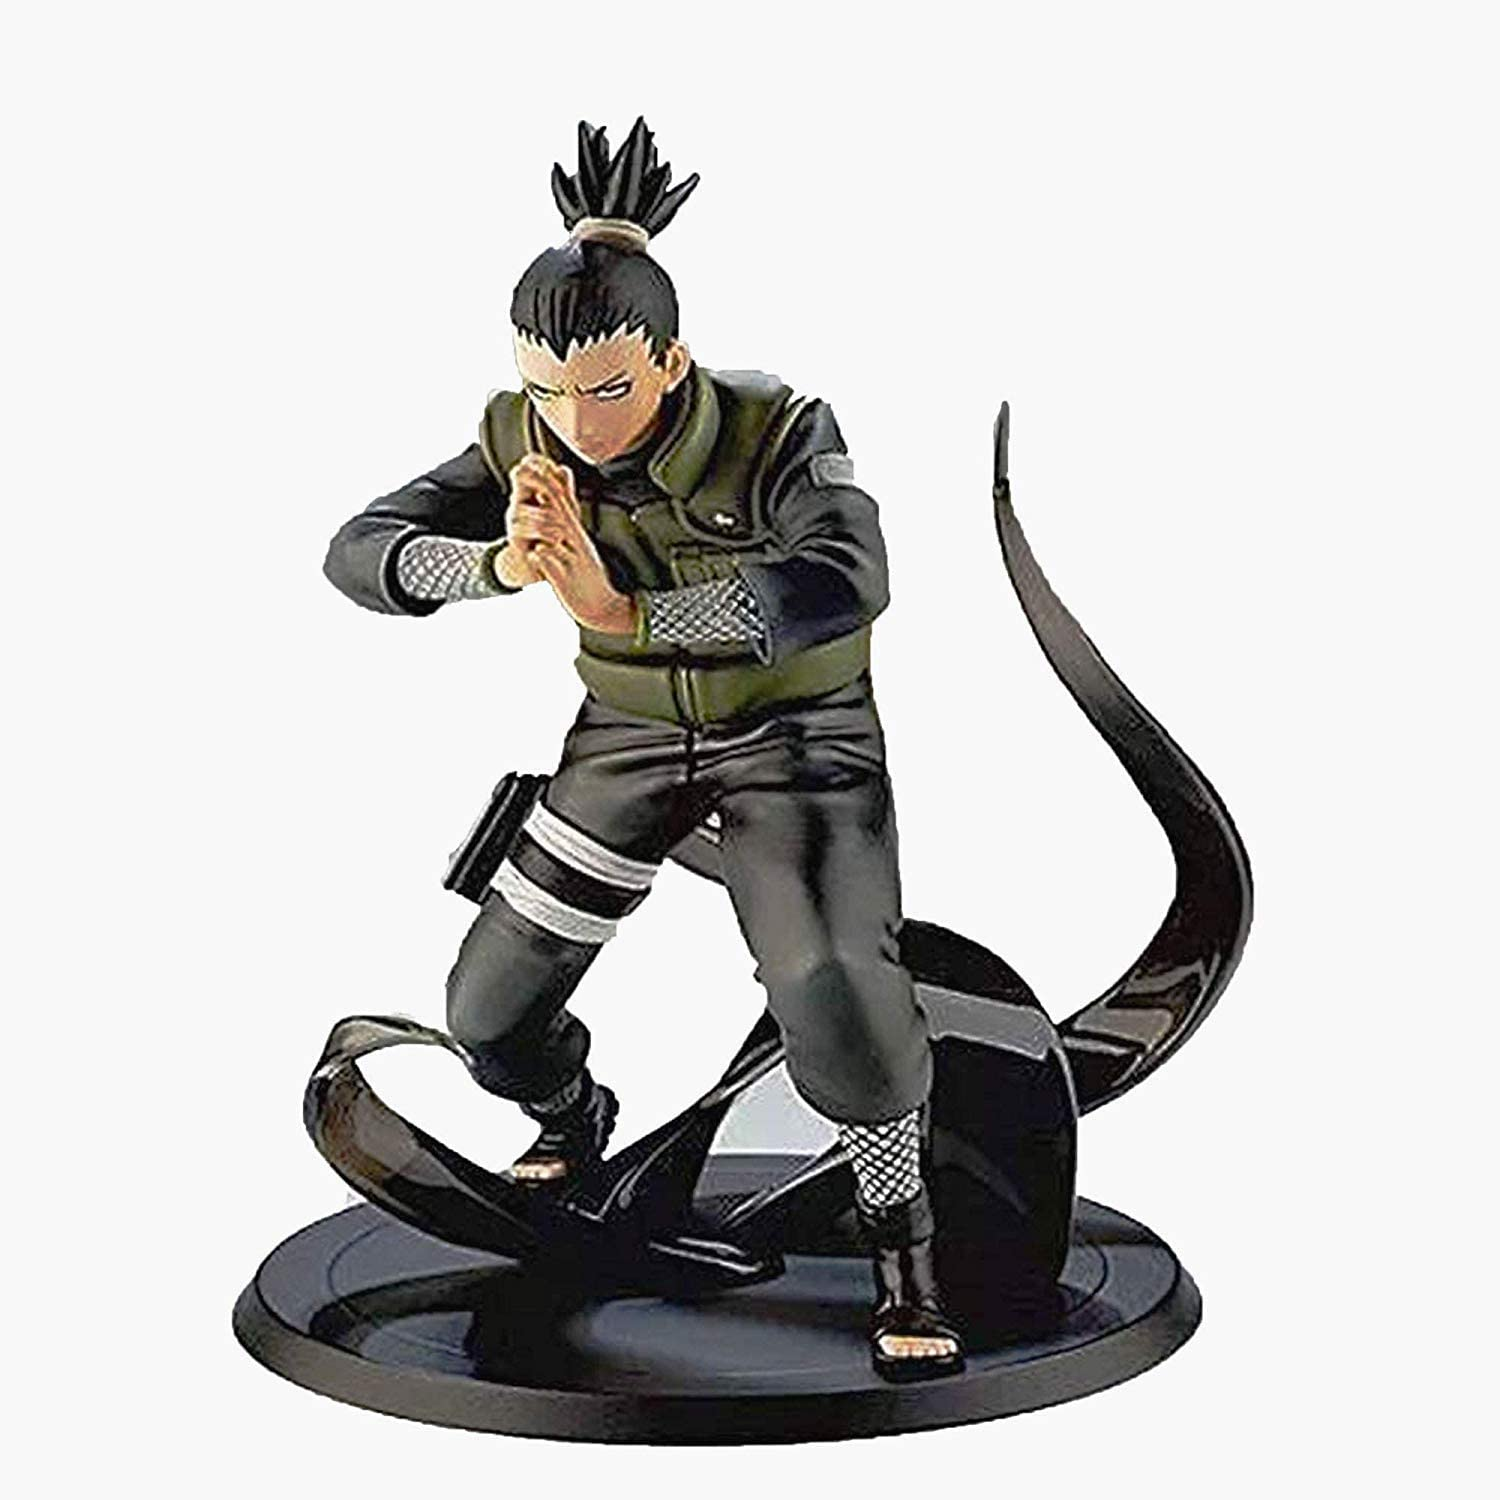 Anime & Manga Toys & Hobbies Anime & Manga Action Figures S.H.Figuarts NARUTO  SHIPPUDEN GAARA 15cm Action PVC Figure New No Box ewdifh.net